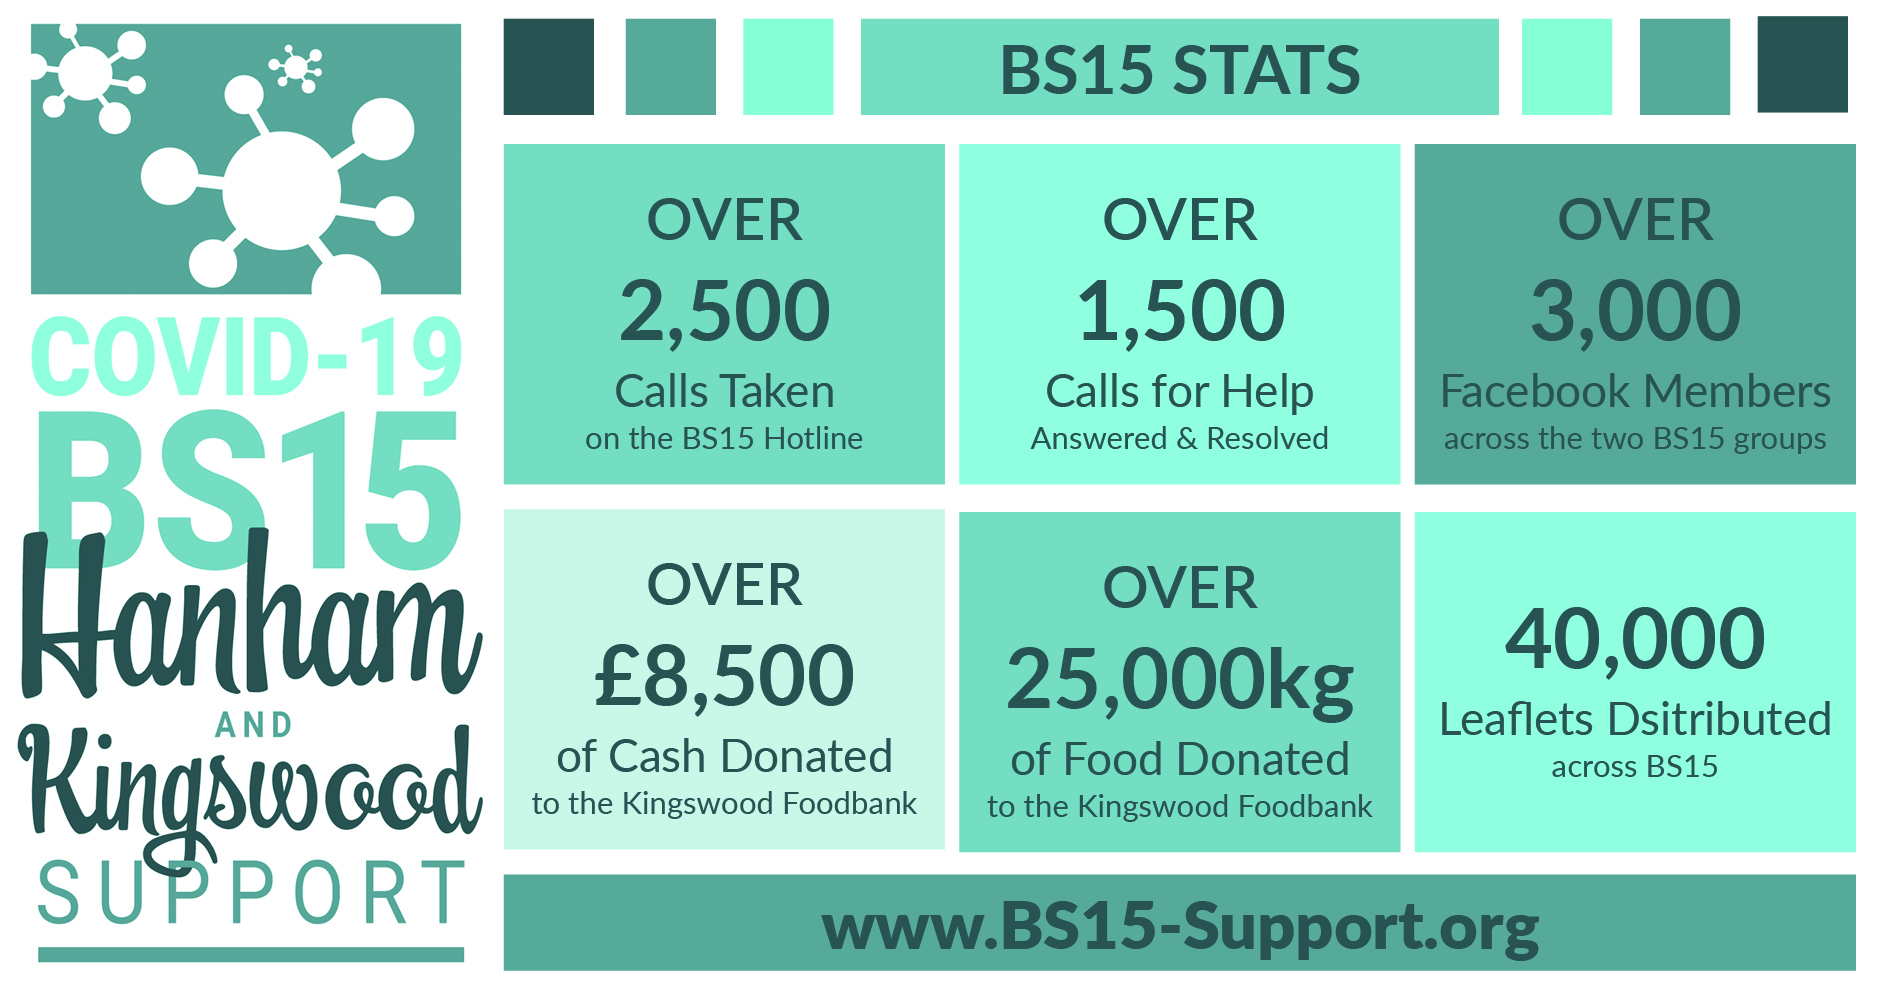 BS15 Stats